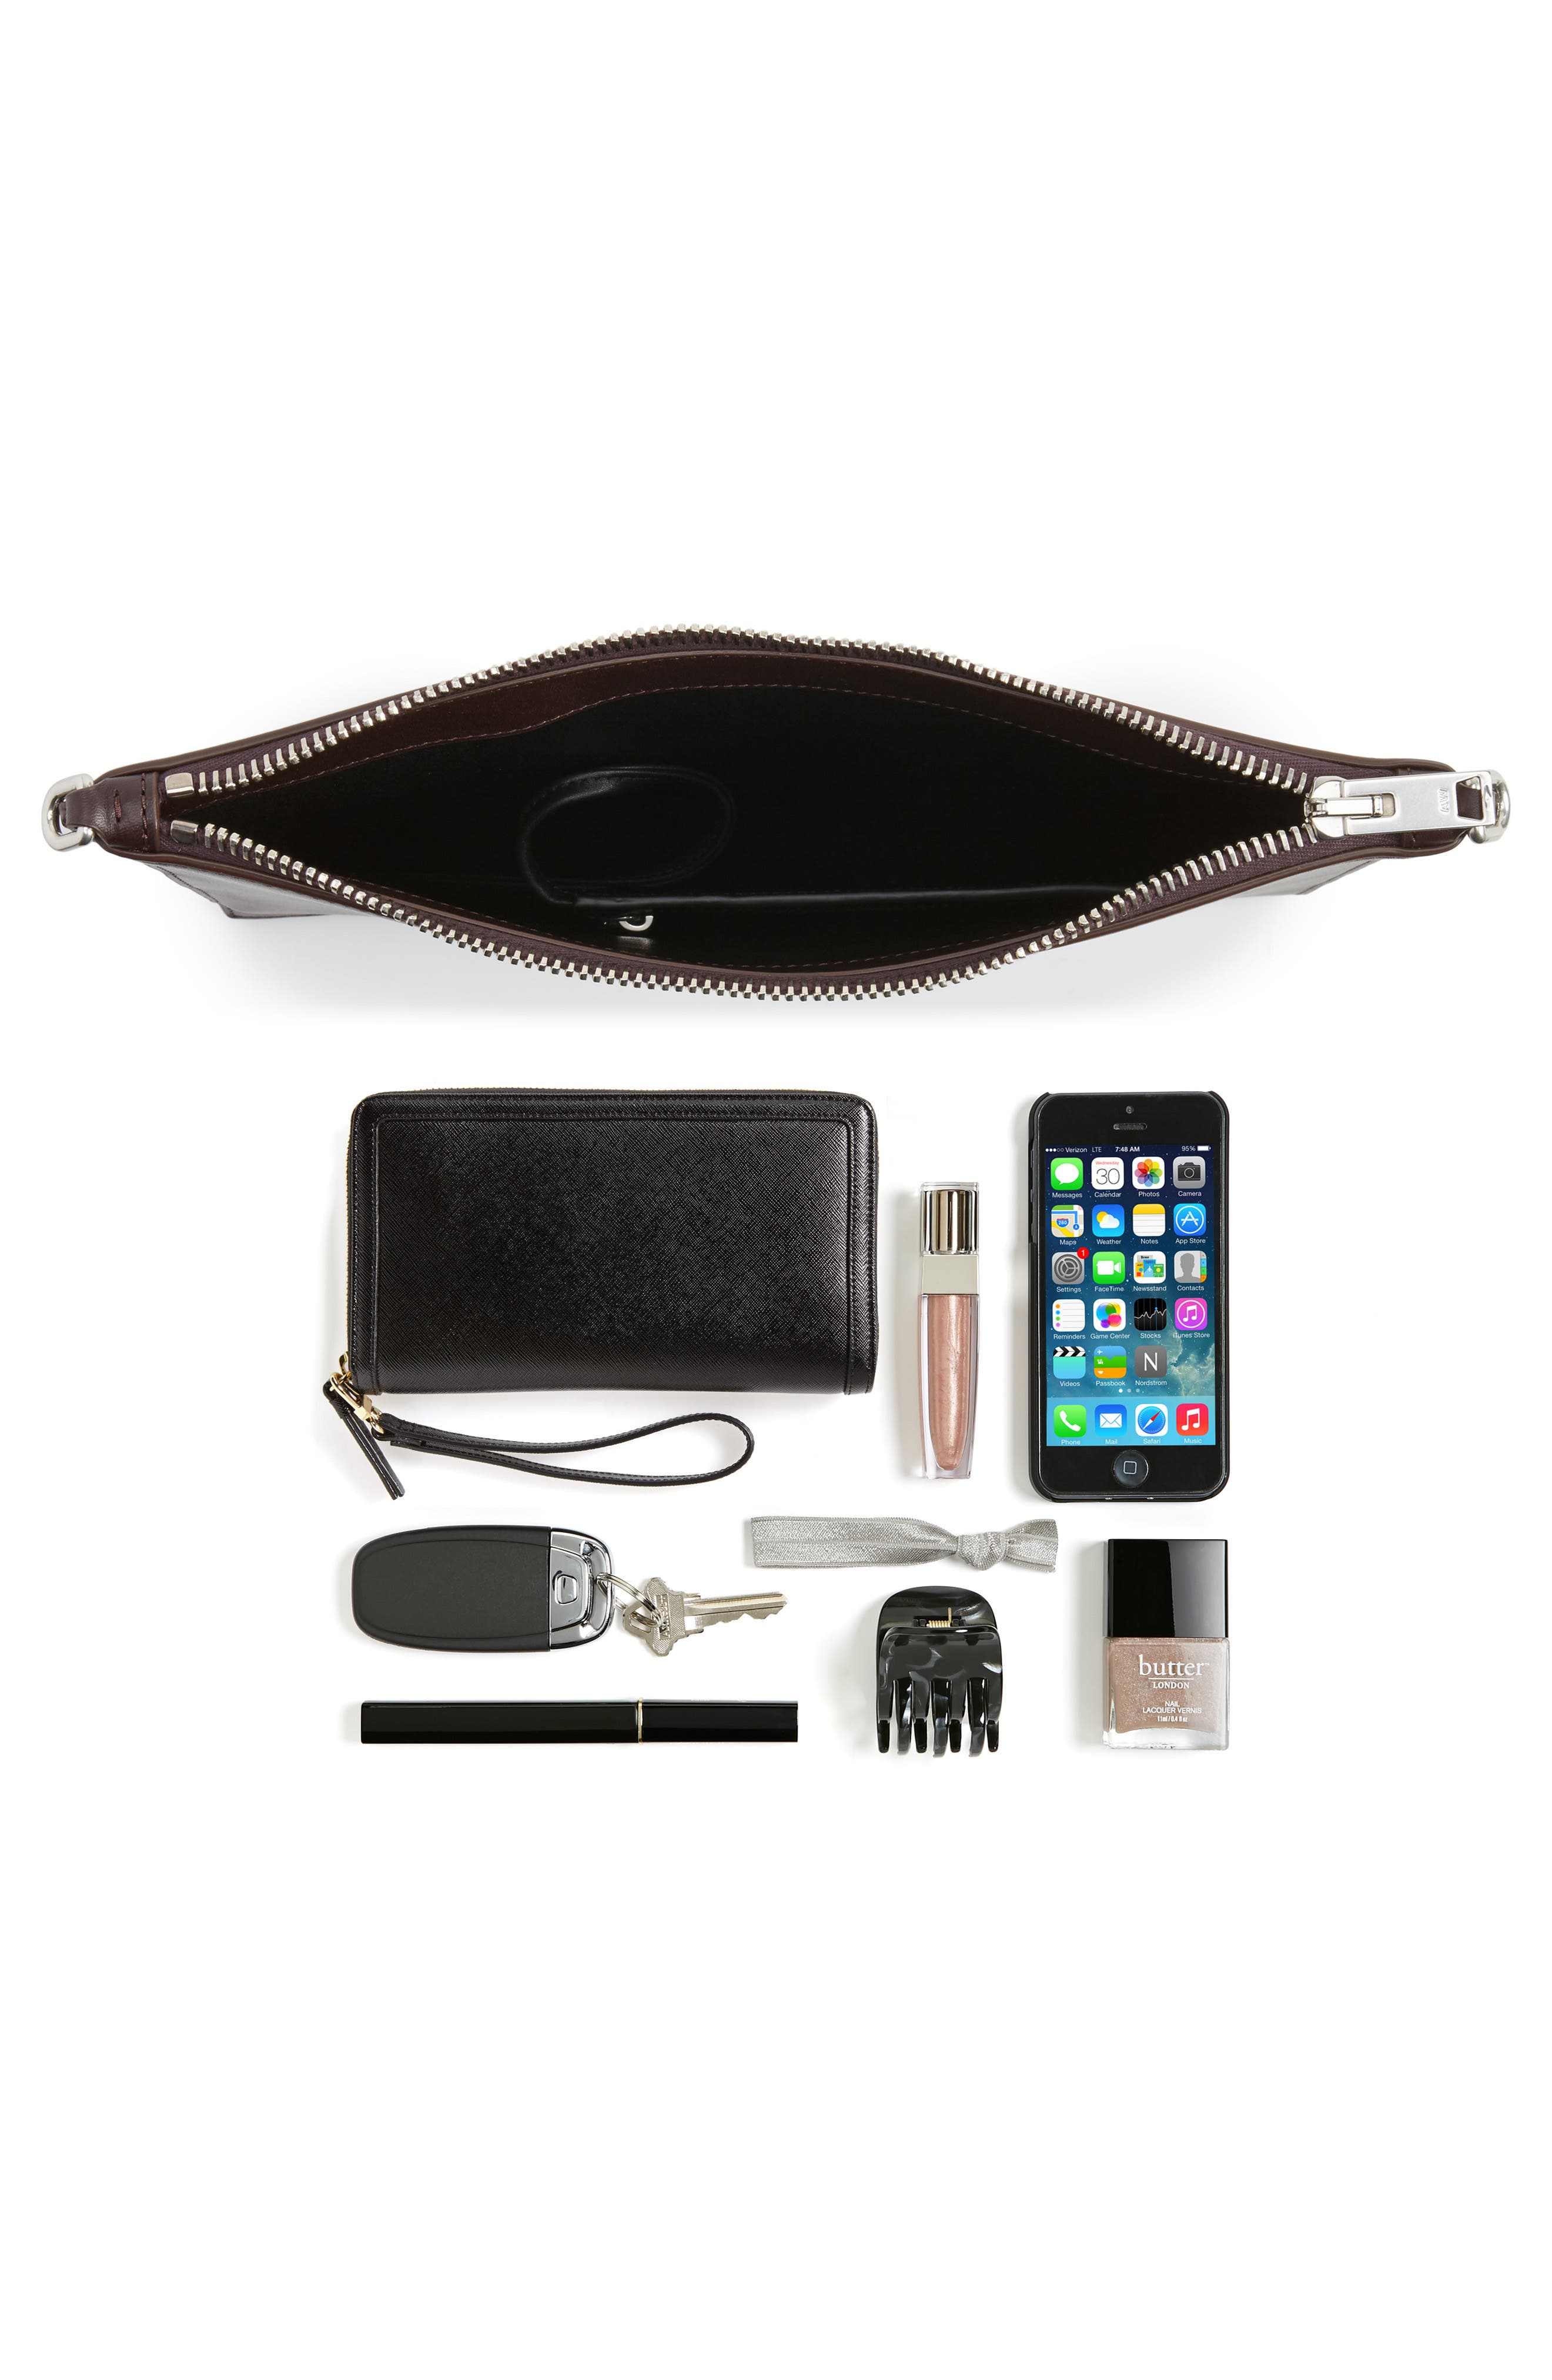 Genesis Box Chain Leather Pouch,                             Alternate thumbnail 7, color,                             240